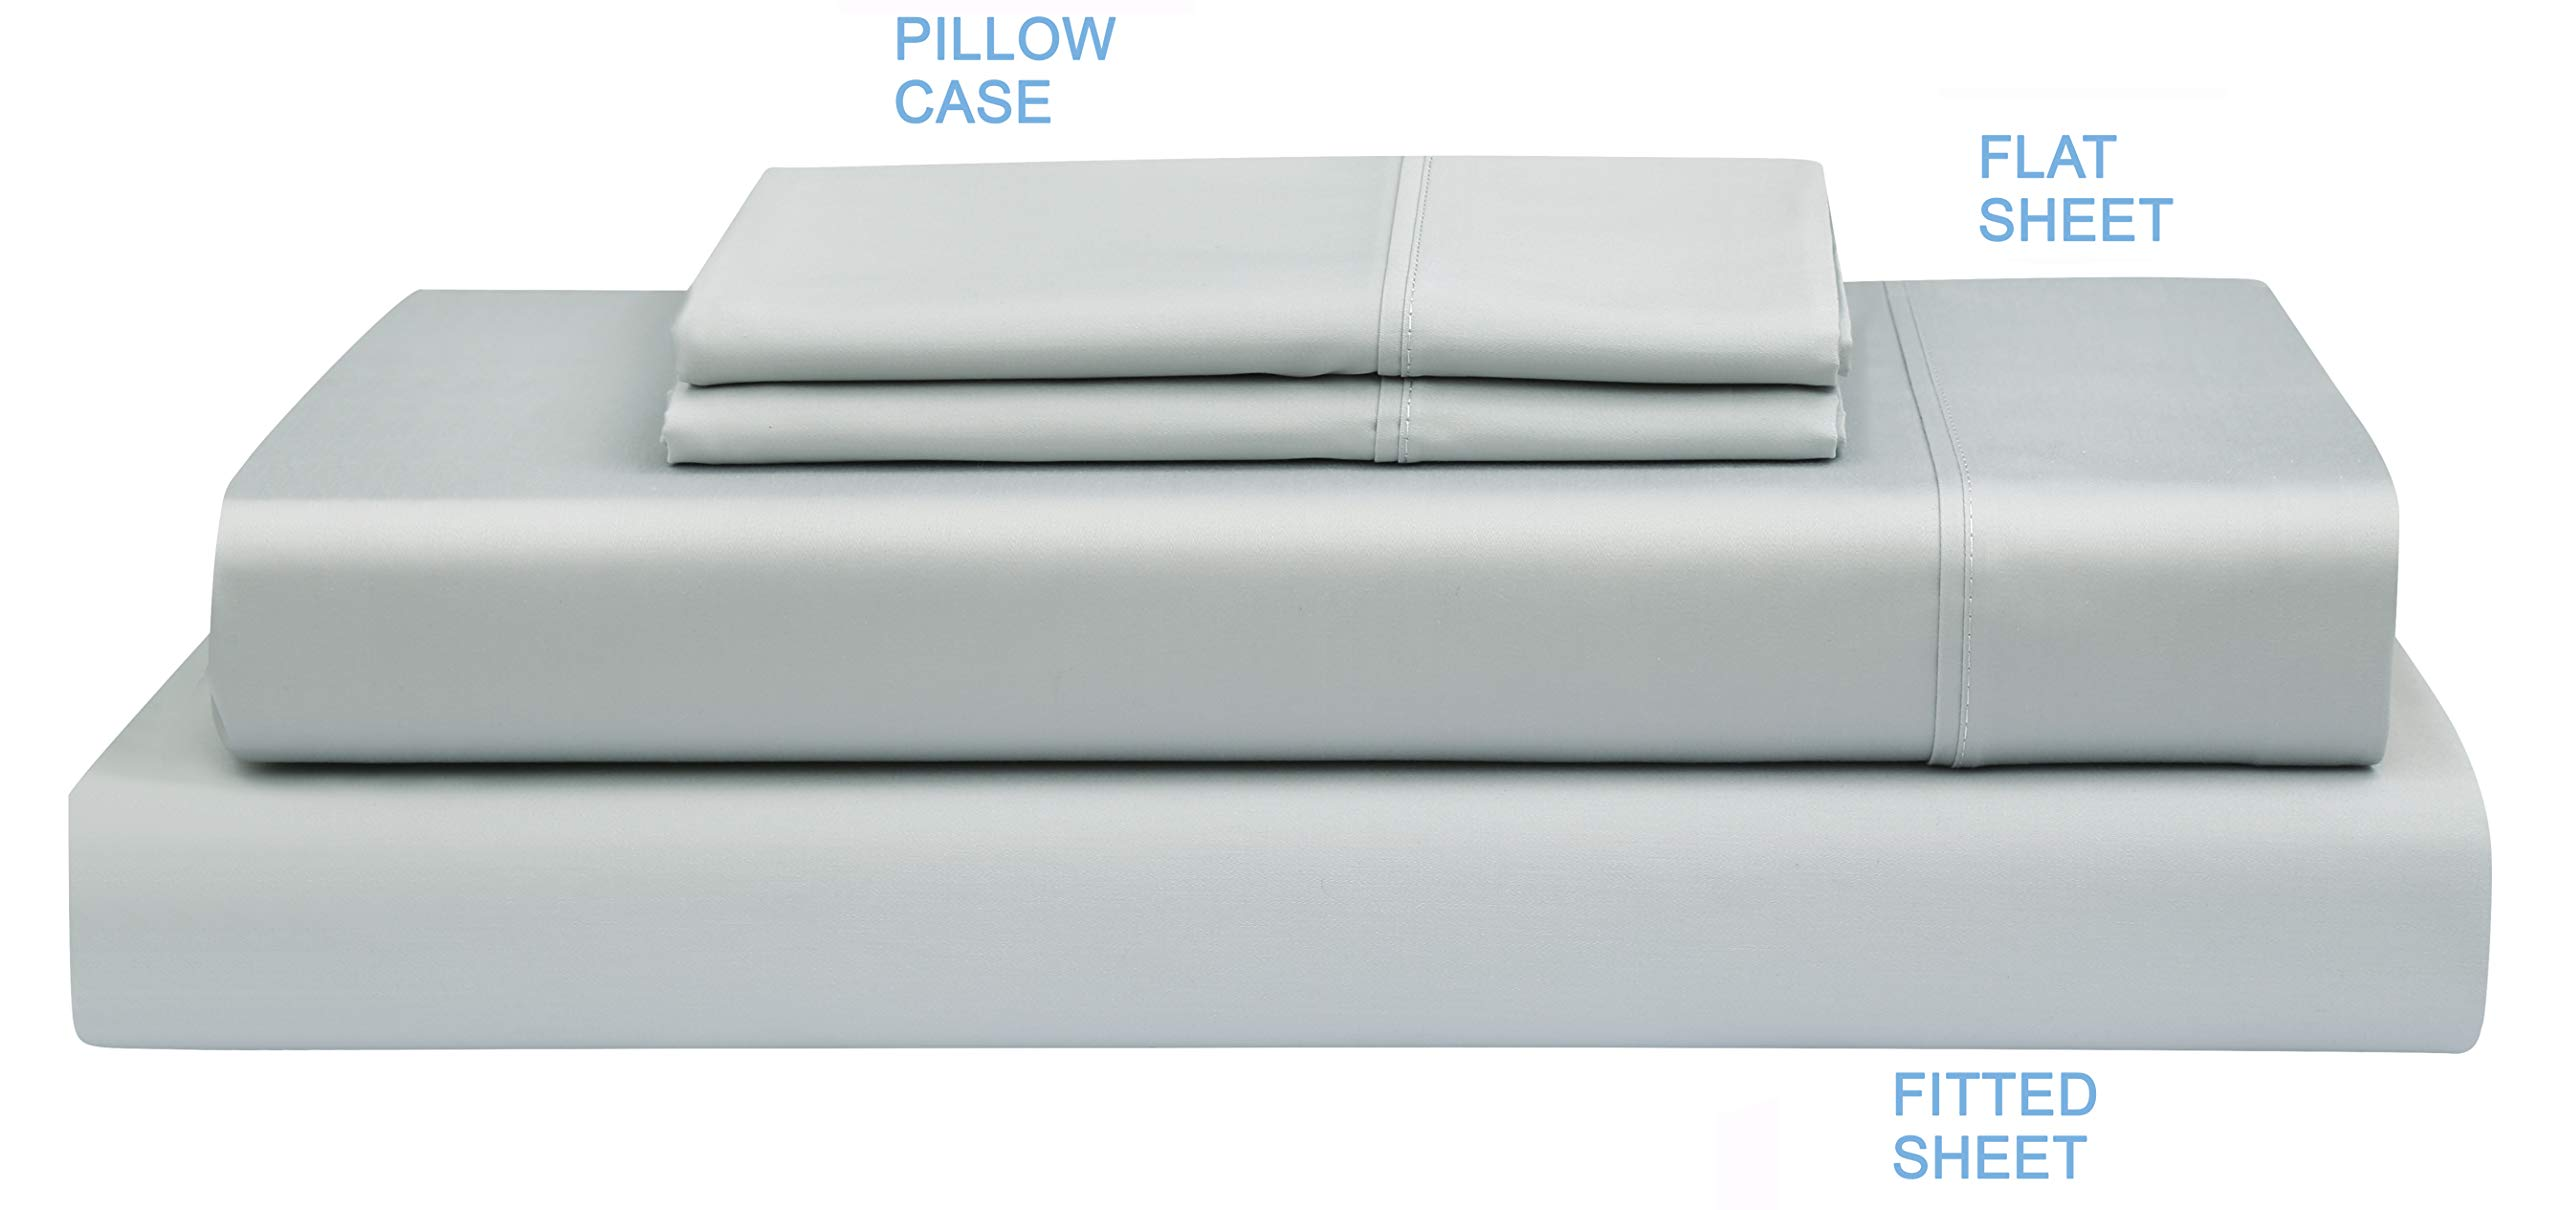 Boston Linen Co. 300 Thread Count Percale 100% Cotton Sheet Set - Luxury Finish - Durable, Crisp, and Breathable Long-Staple Combed Cotton - 4 Piece Set - King, Steel Gray by Boston Linen Company (Image #2)